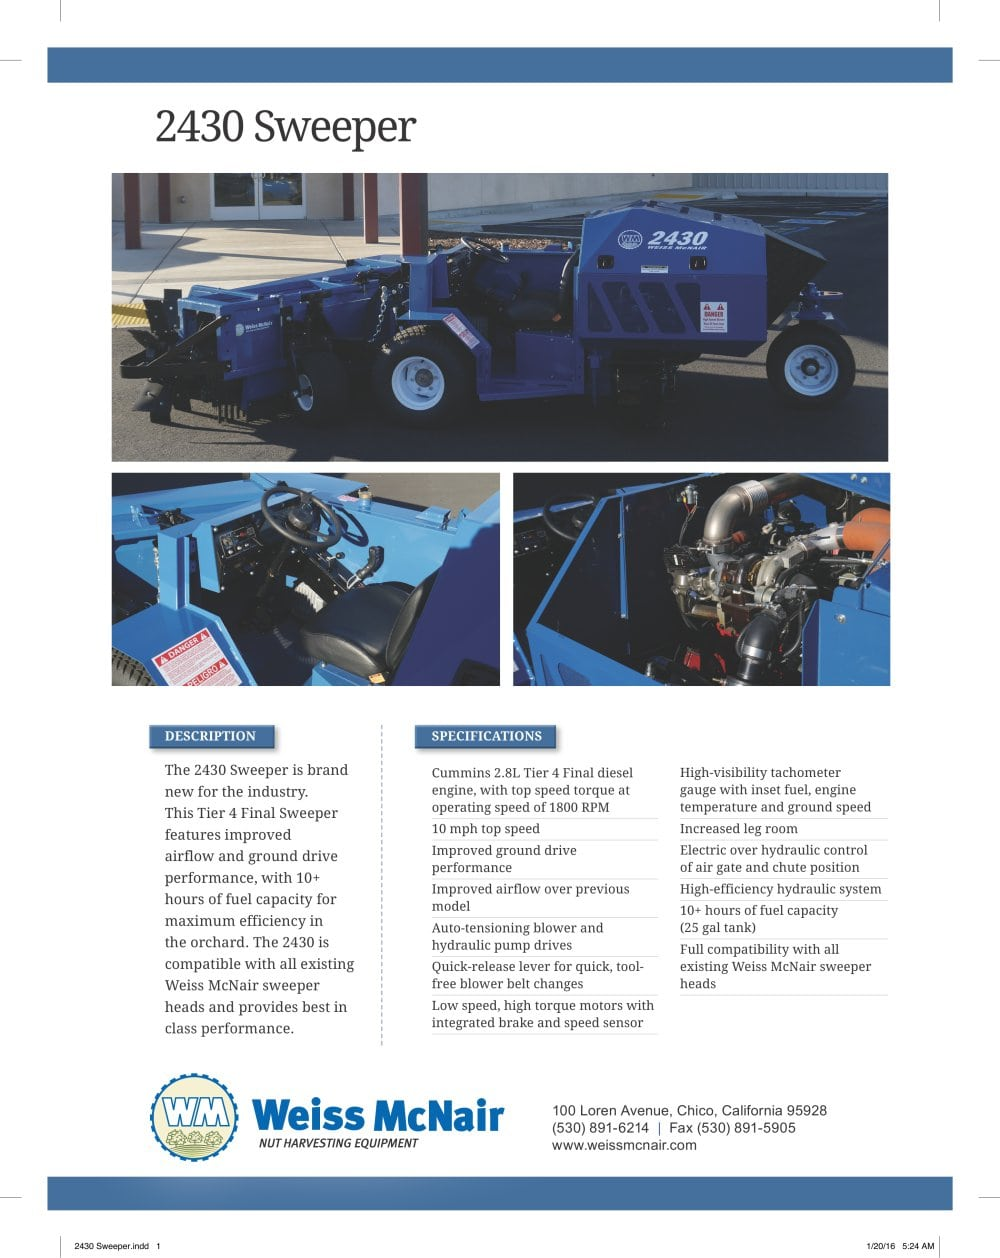 2430 Sweeper Specifications - 1 / 1 Pages